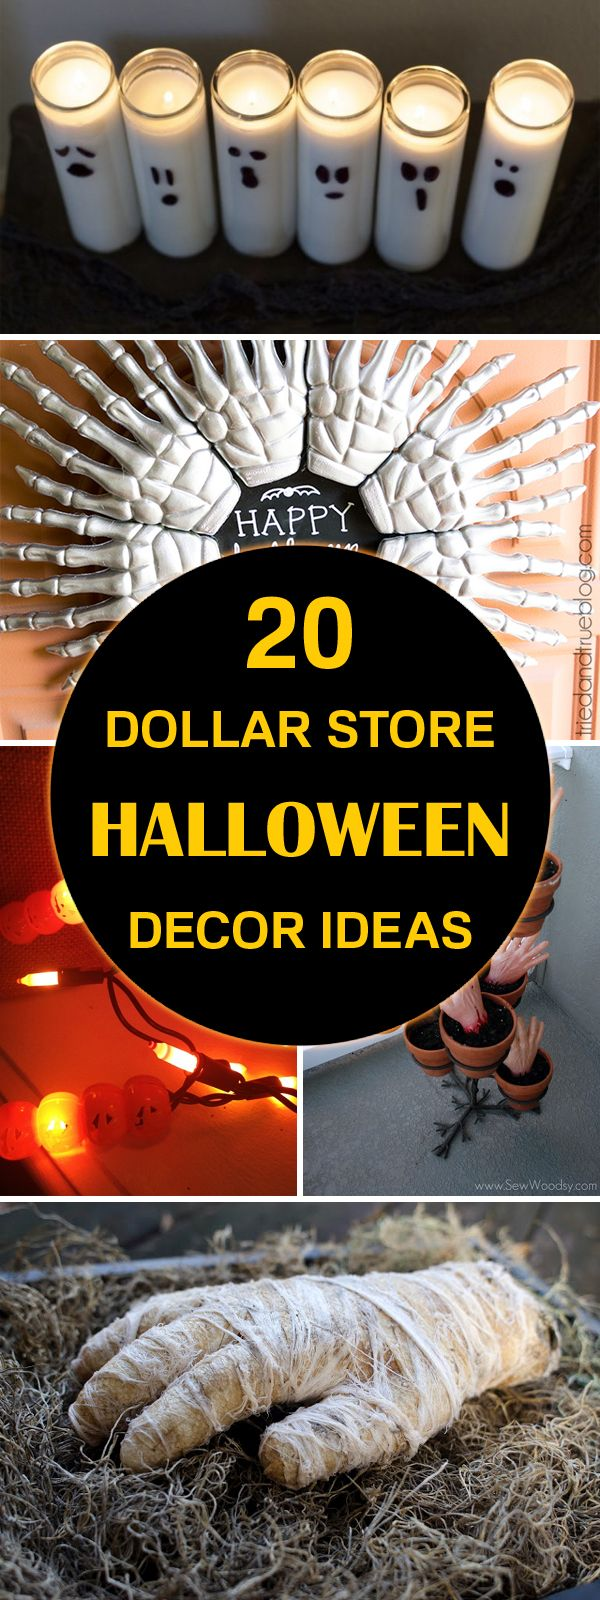 20 dollar store halloween decor ideas | dollar store halloween